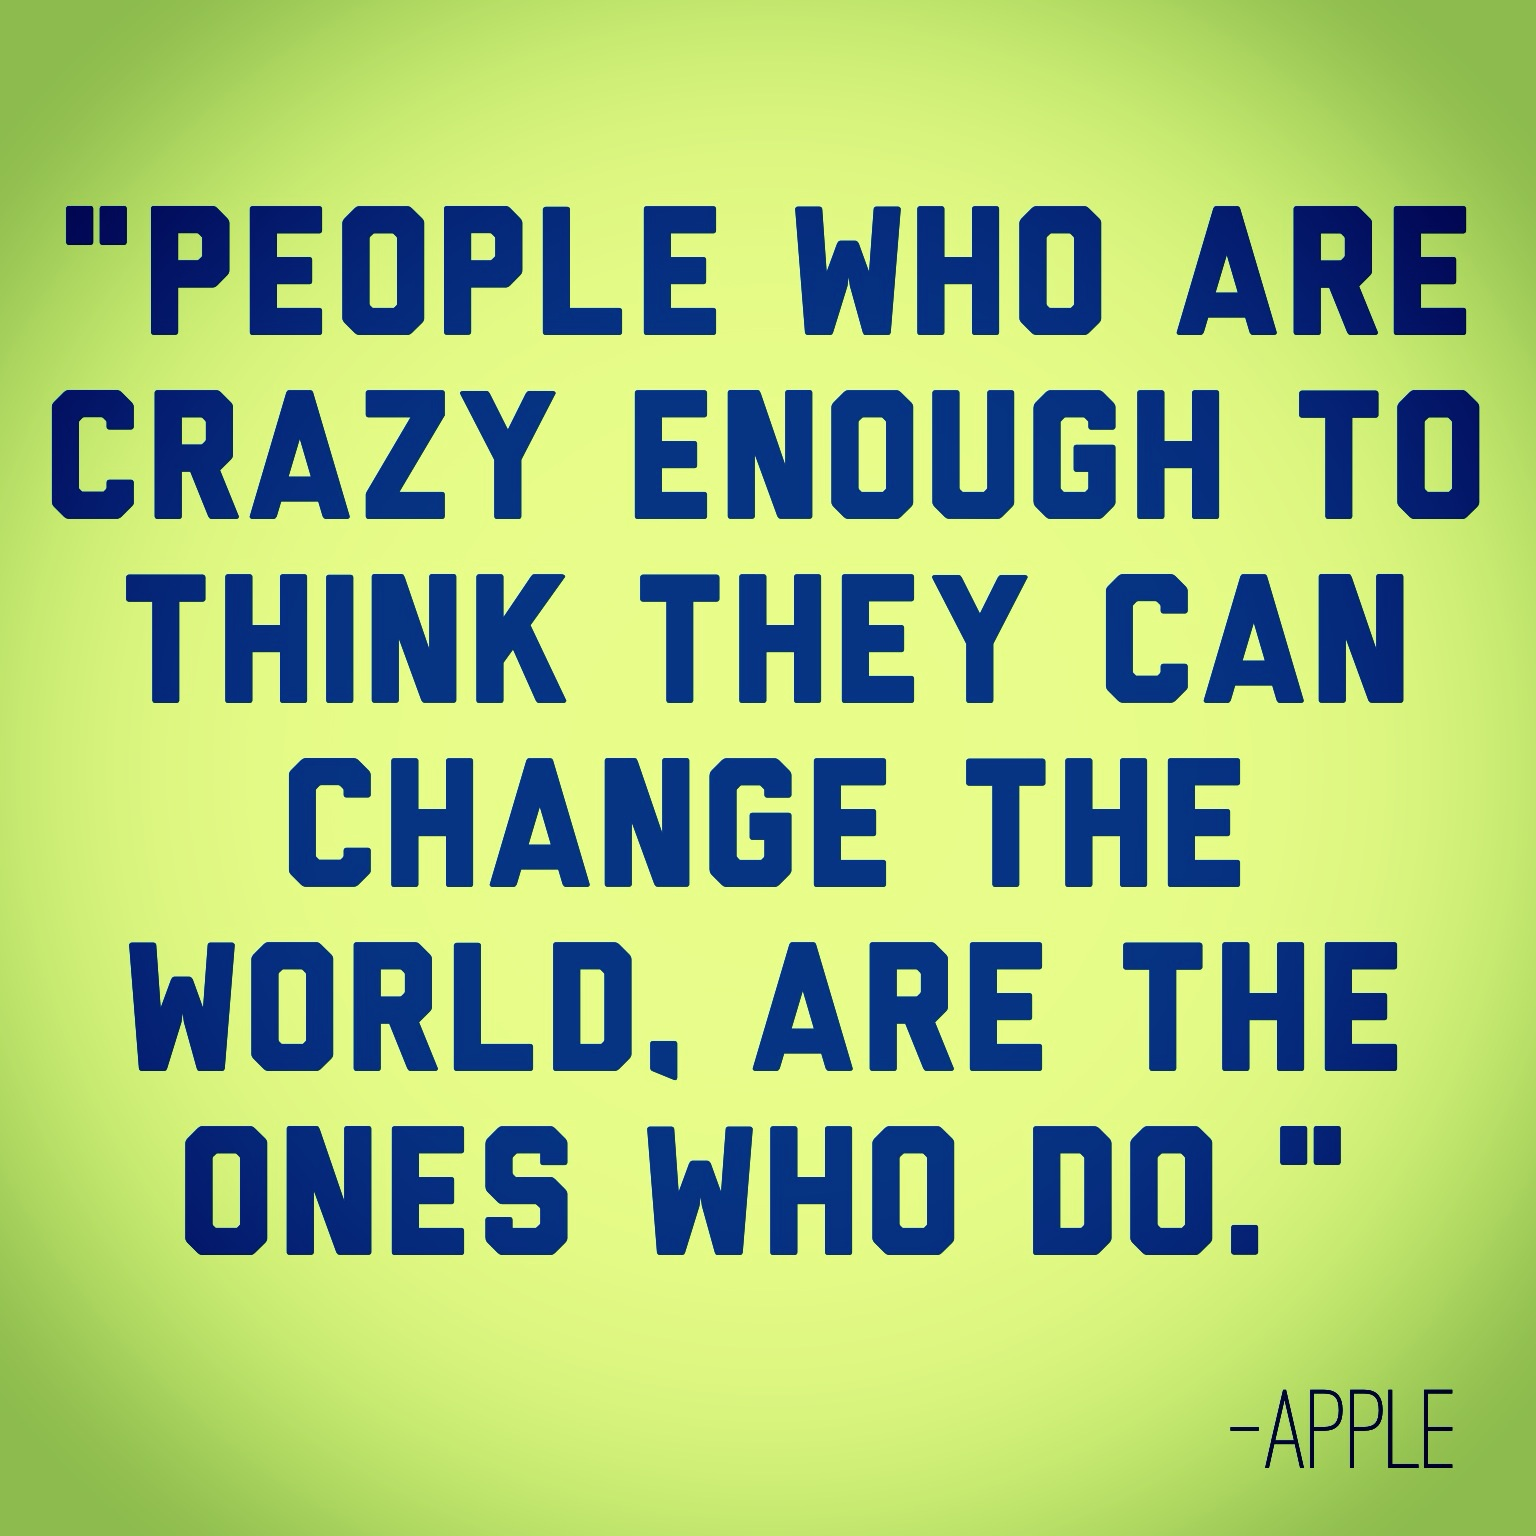 Admirable Quotes Julie Flygare People Who Are Crazy Enough To Think Y Can Change World Are Ones Who Do Crazy People Quotes Crazy People Quotes S bark post Crazy People Quotes